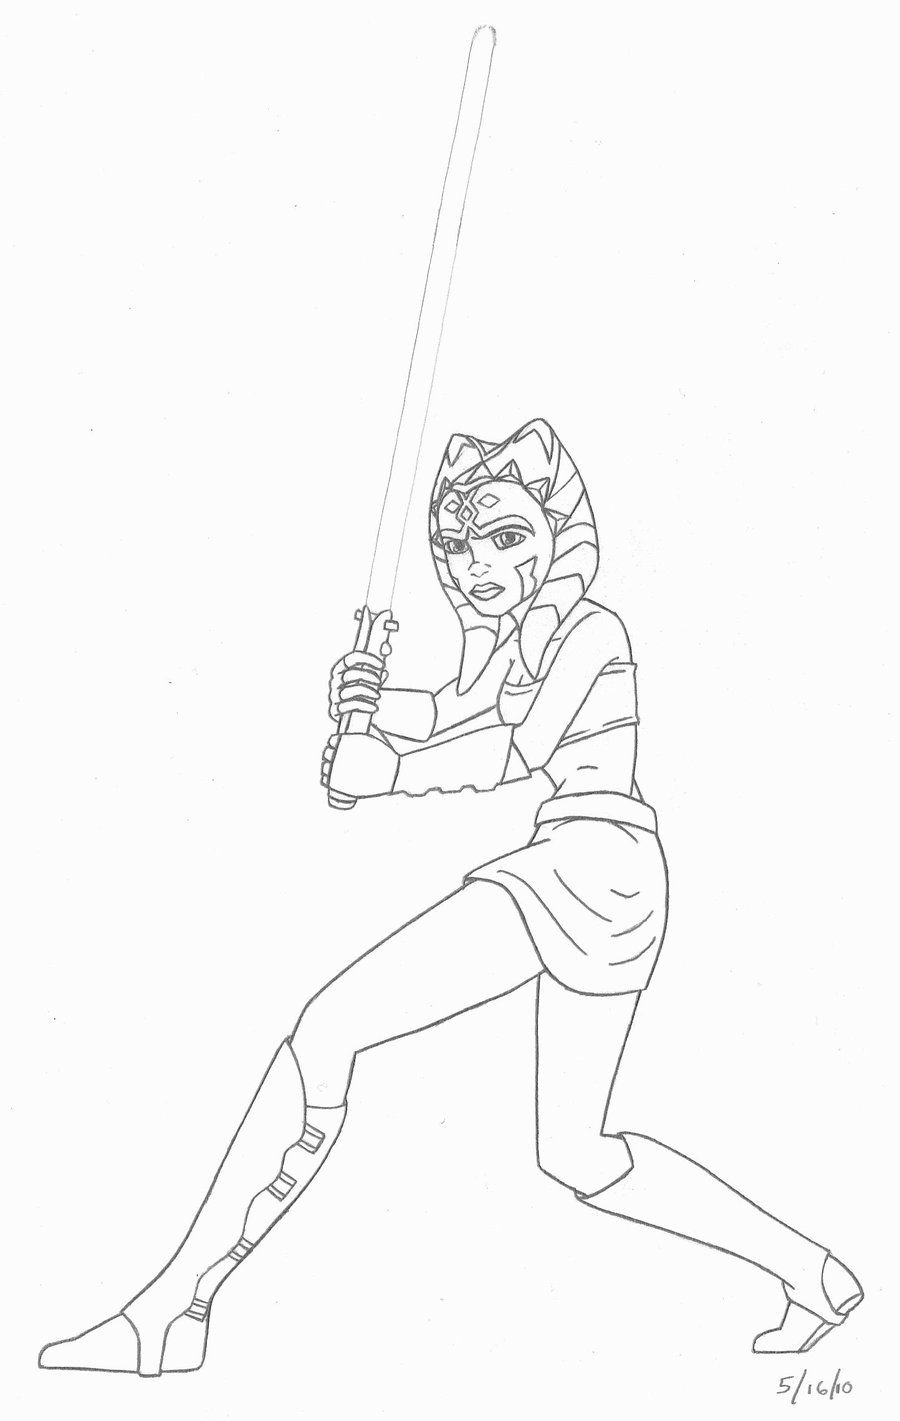 star wars the force awakens coloring pages Google Search